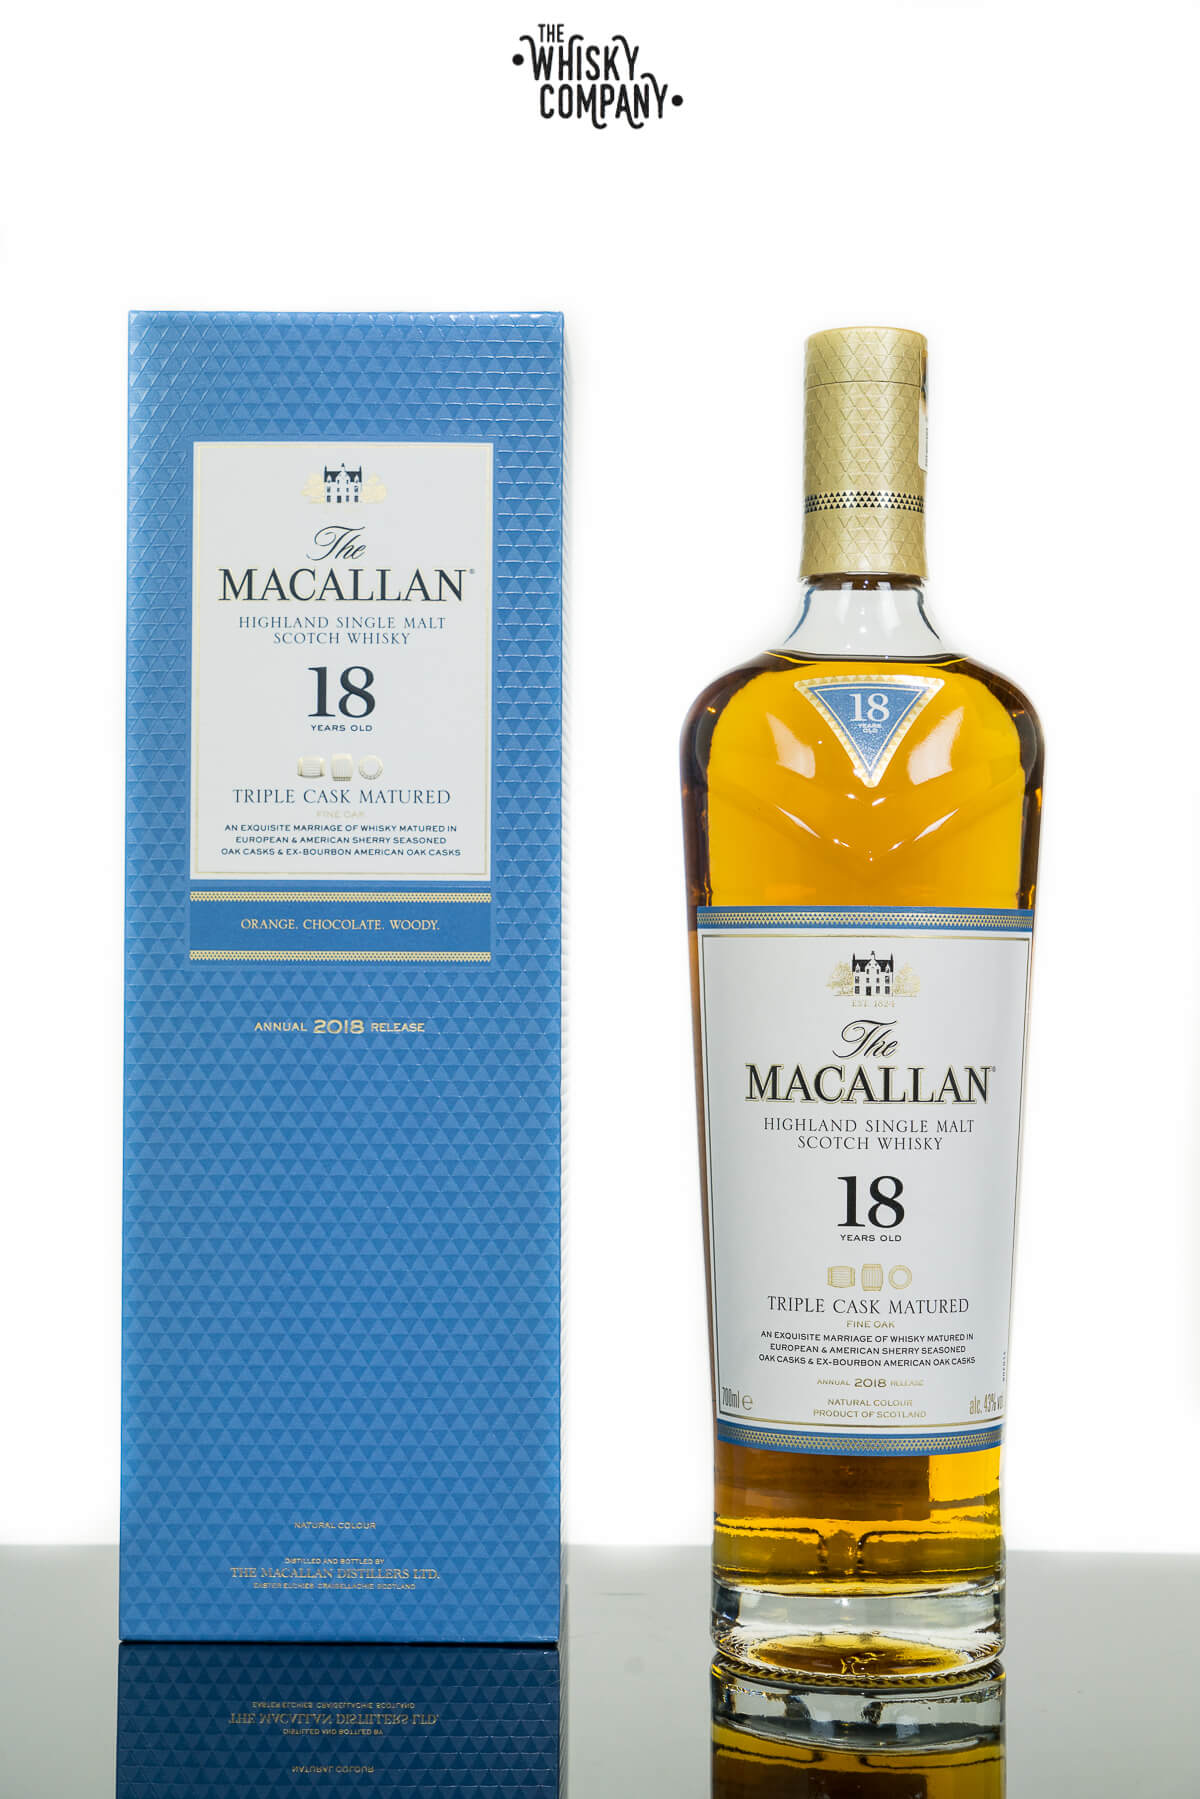 The Macallan 18 Years Old Triple Cask Matured Single Malt Scotch Whisky (700ml)